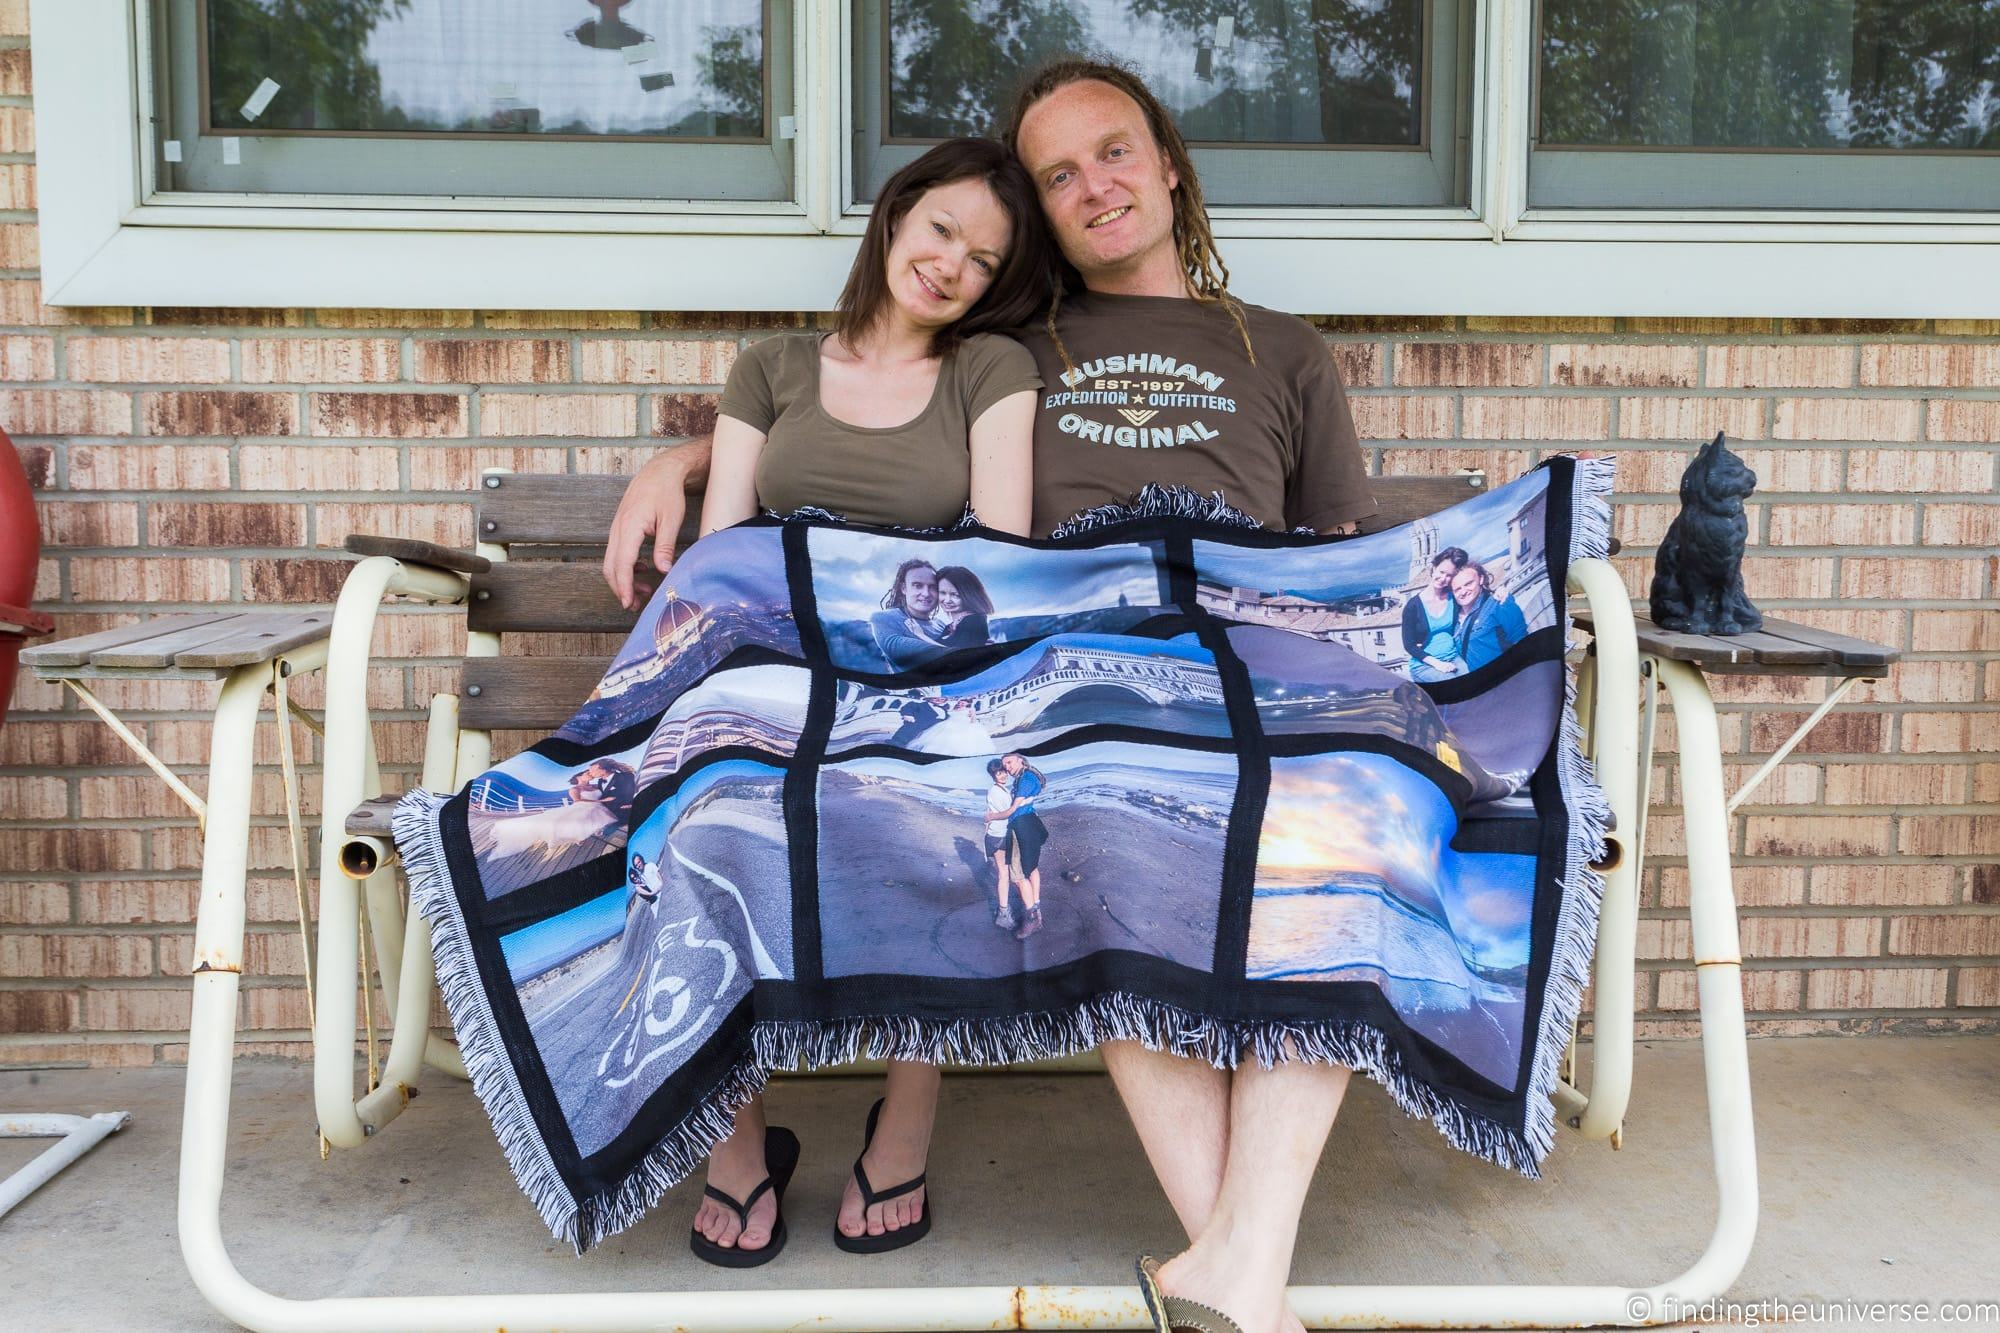 Laurence and Jess blanket